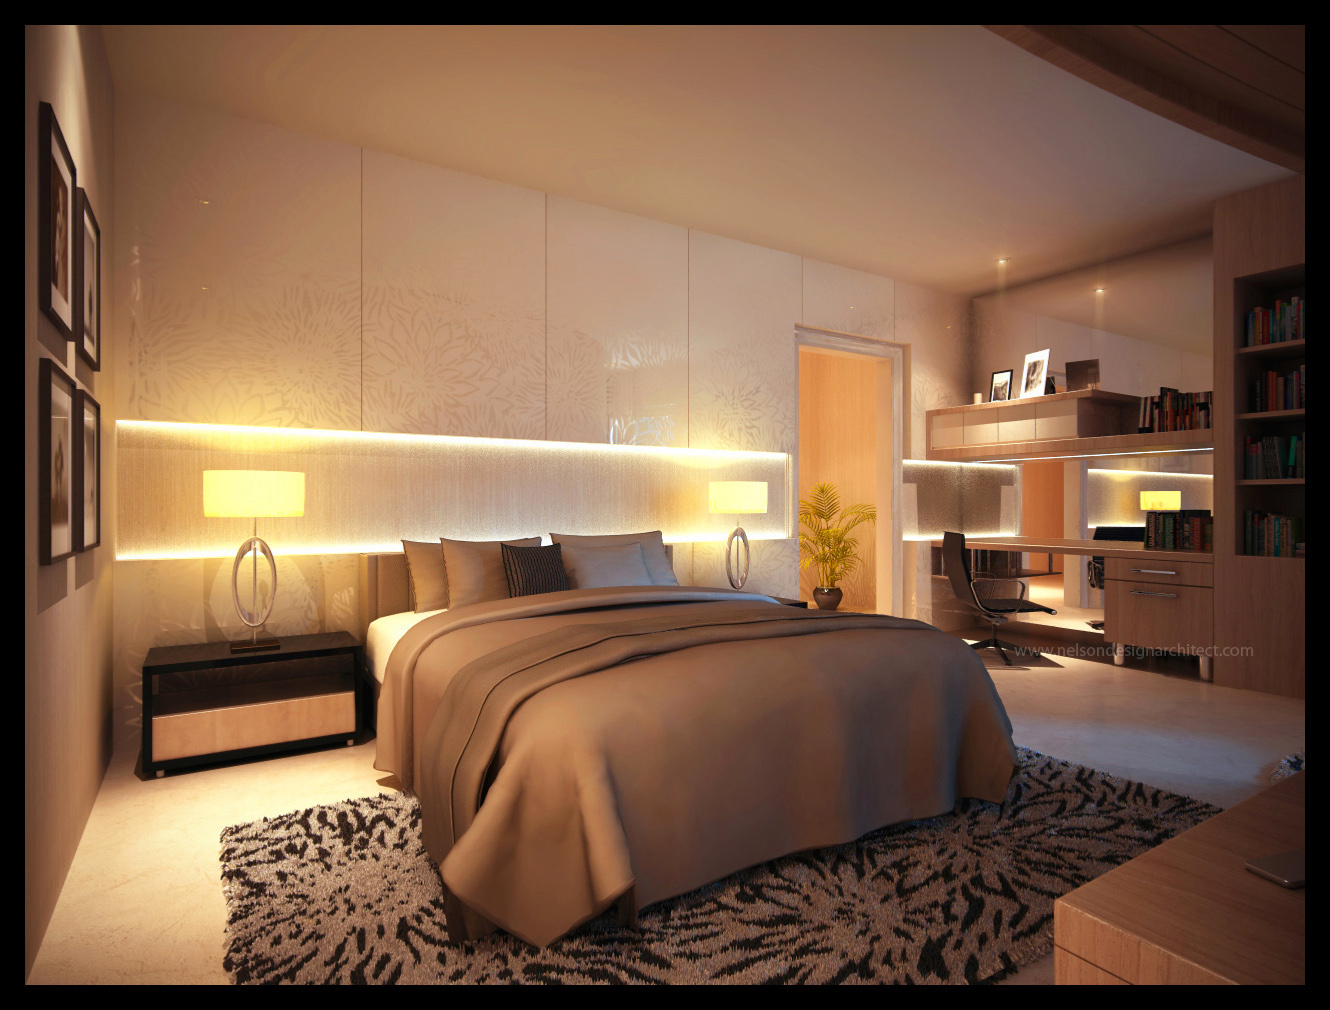 Another Bed Room by Neellss.jpg